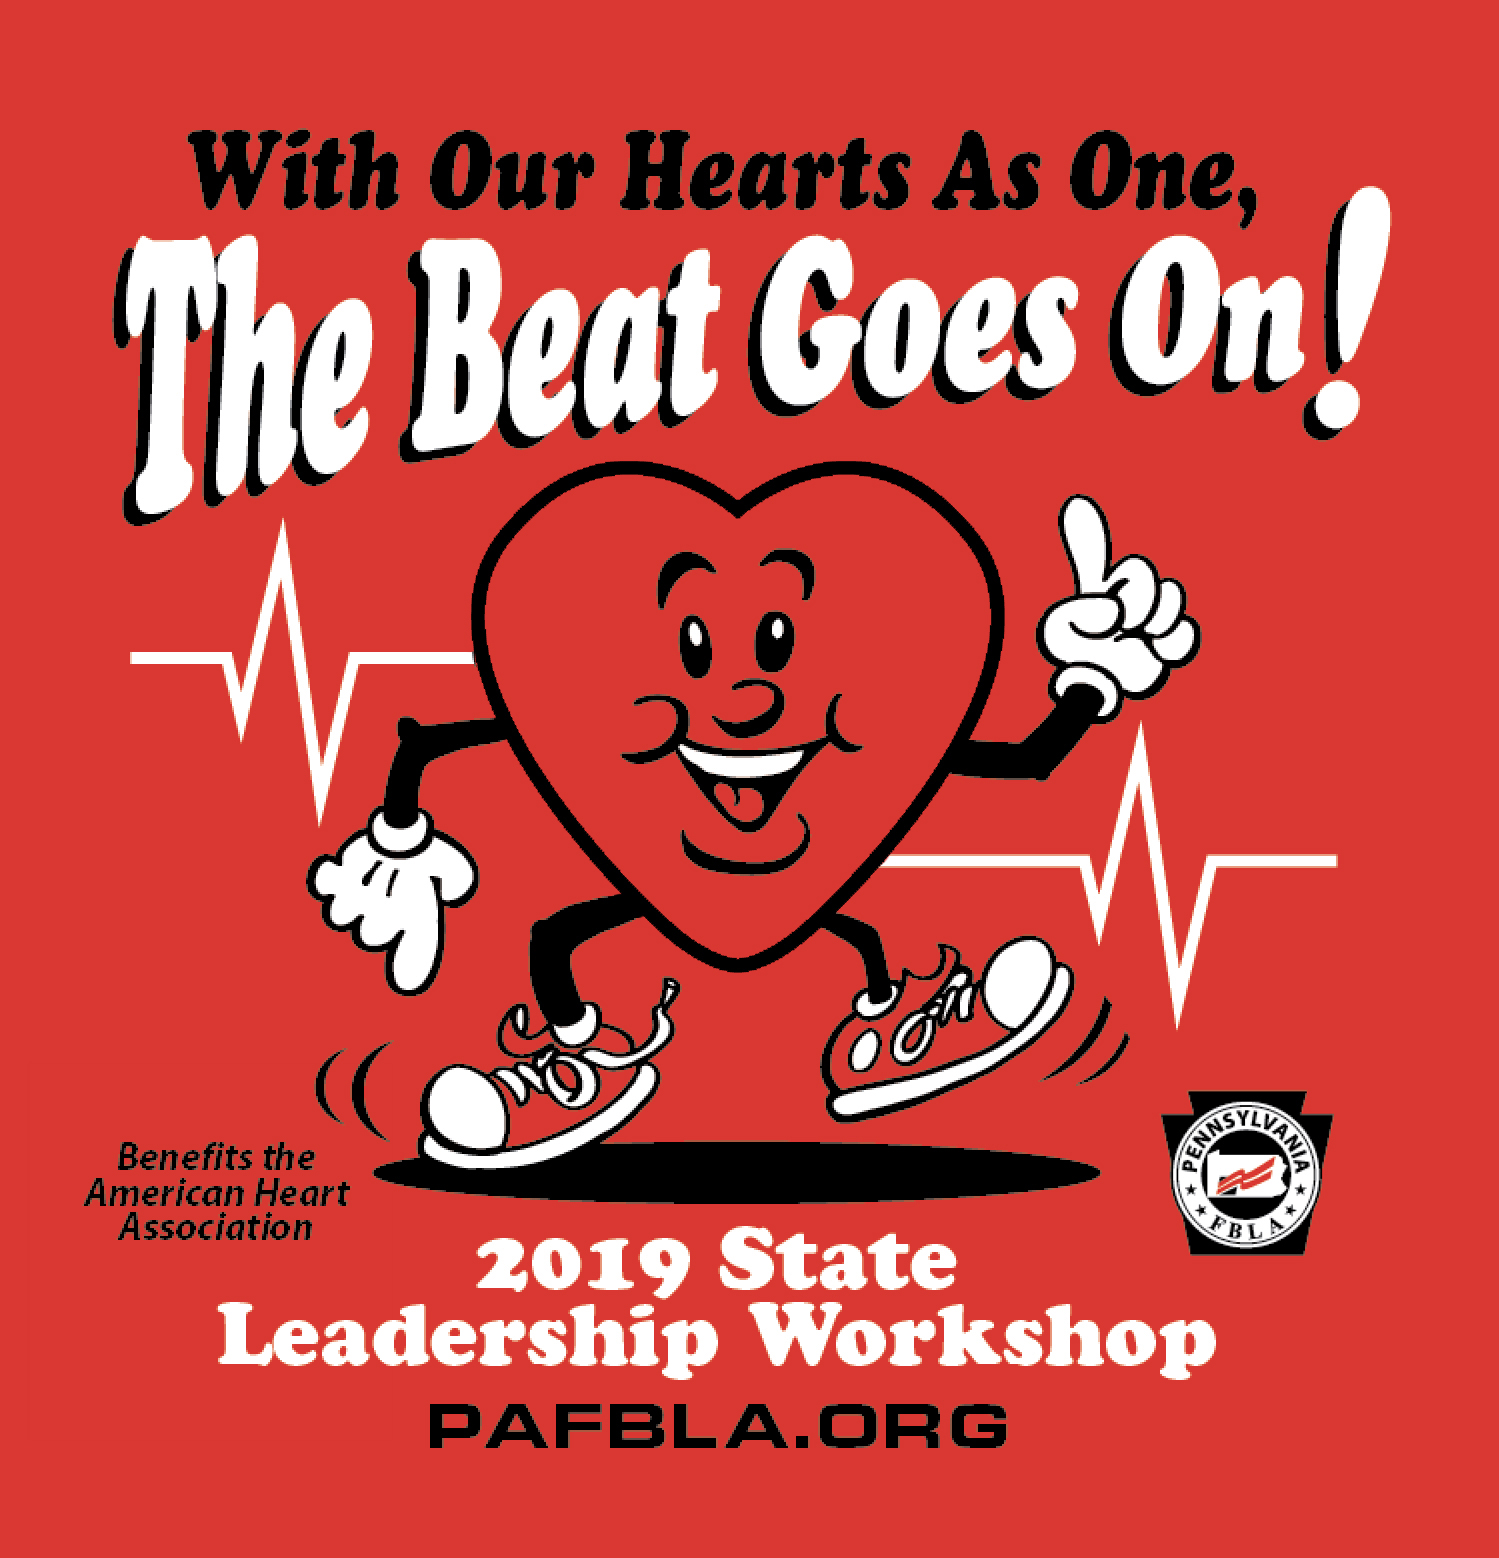 SLW T-shirt Sale to Benefit the American Heart Association